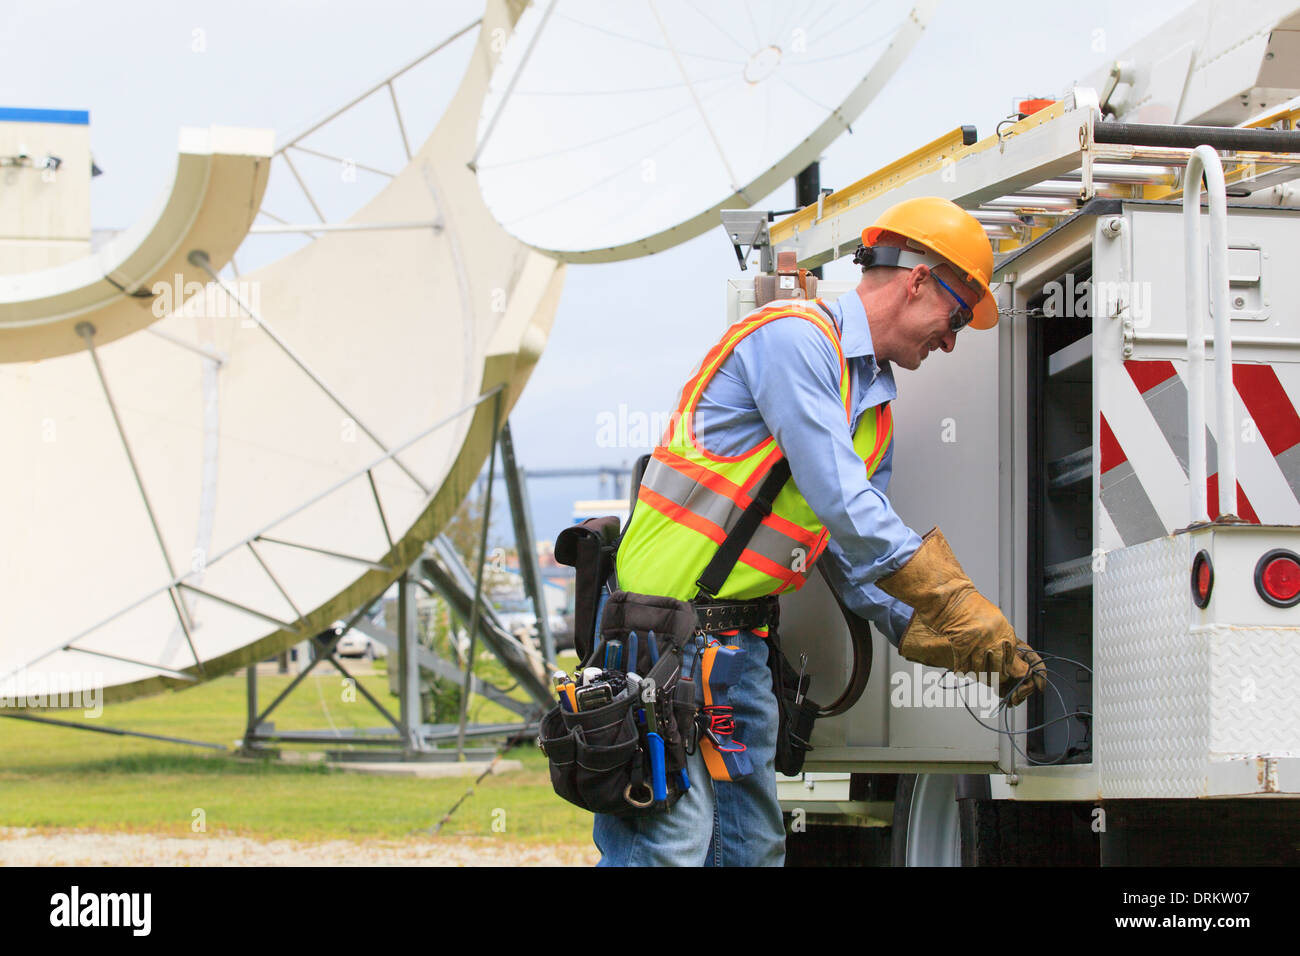 Pulling Wire Stock Photos & Pulling Wire Stock Images - Alamy